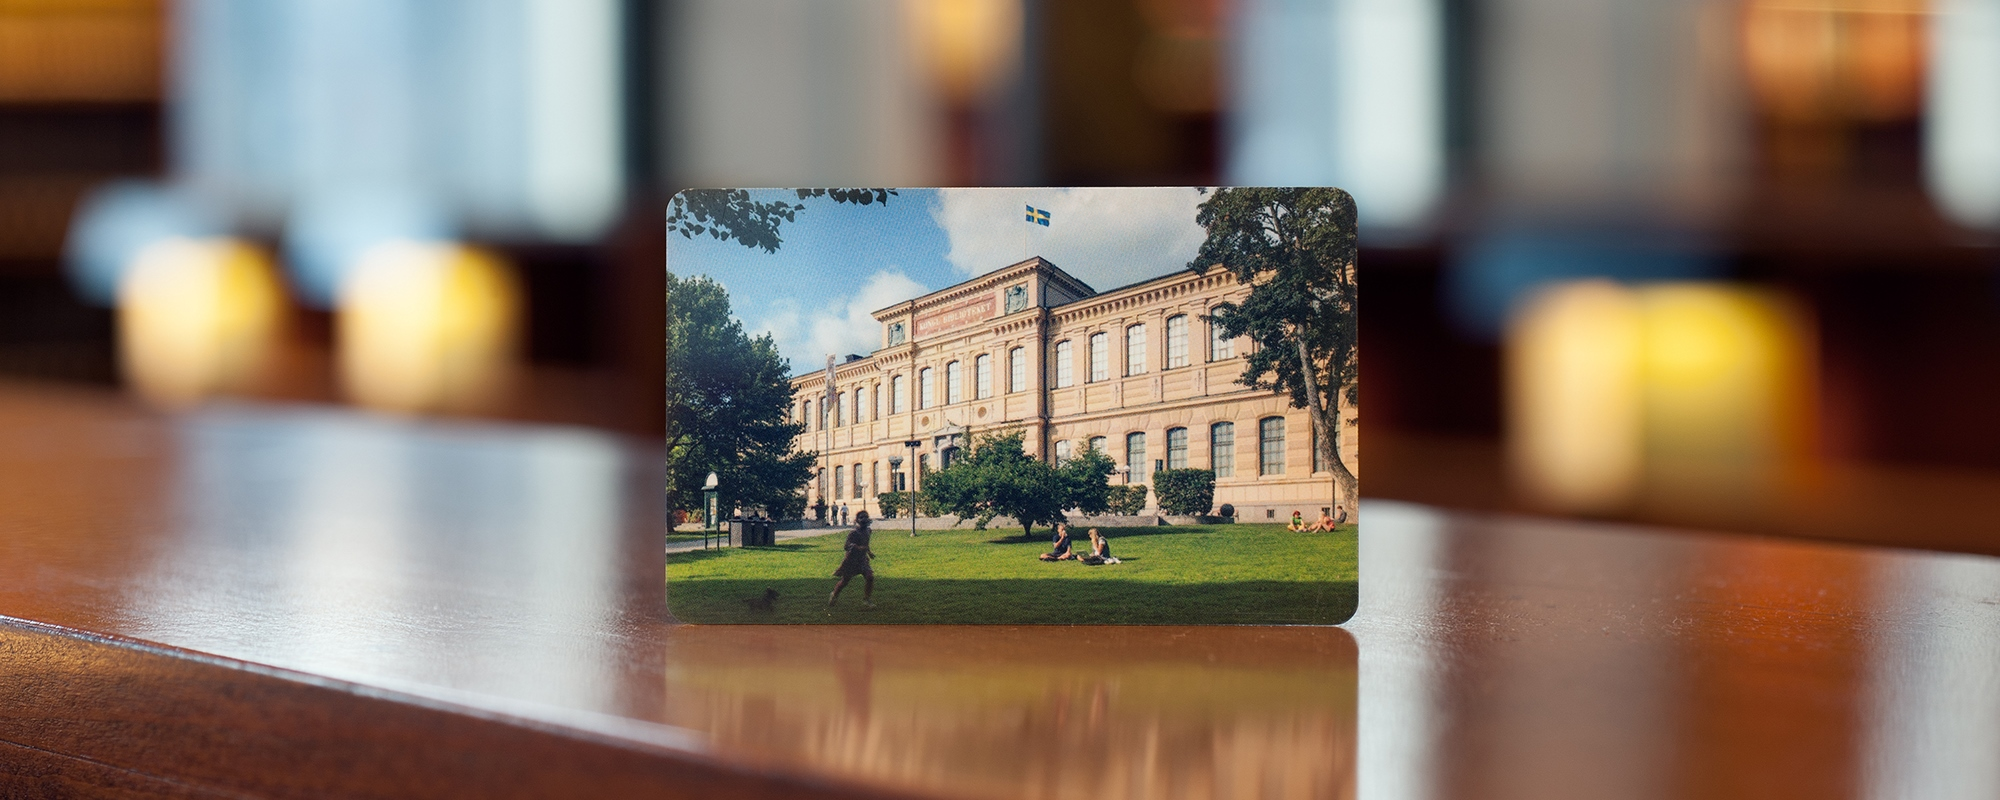 A library card with a picture of the National Library.